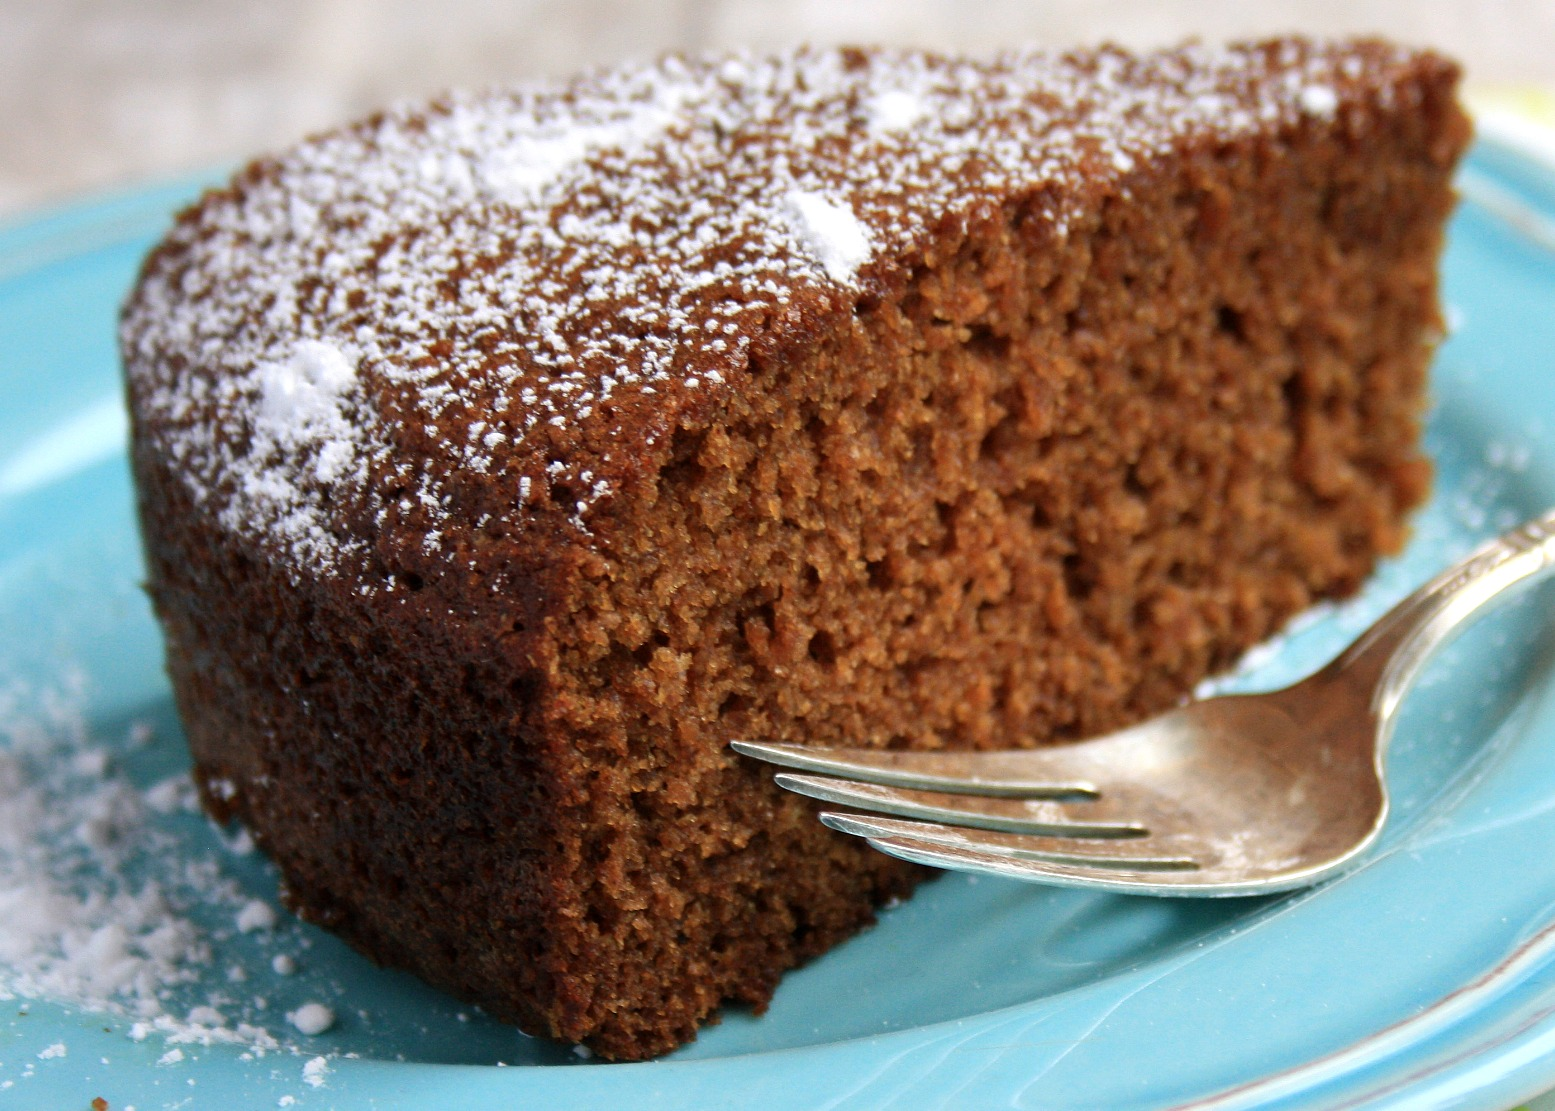 How To Make Spice Cake With Molasses